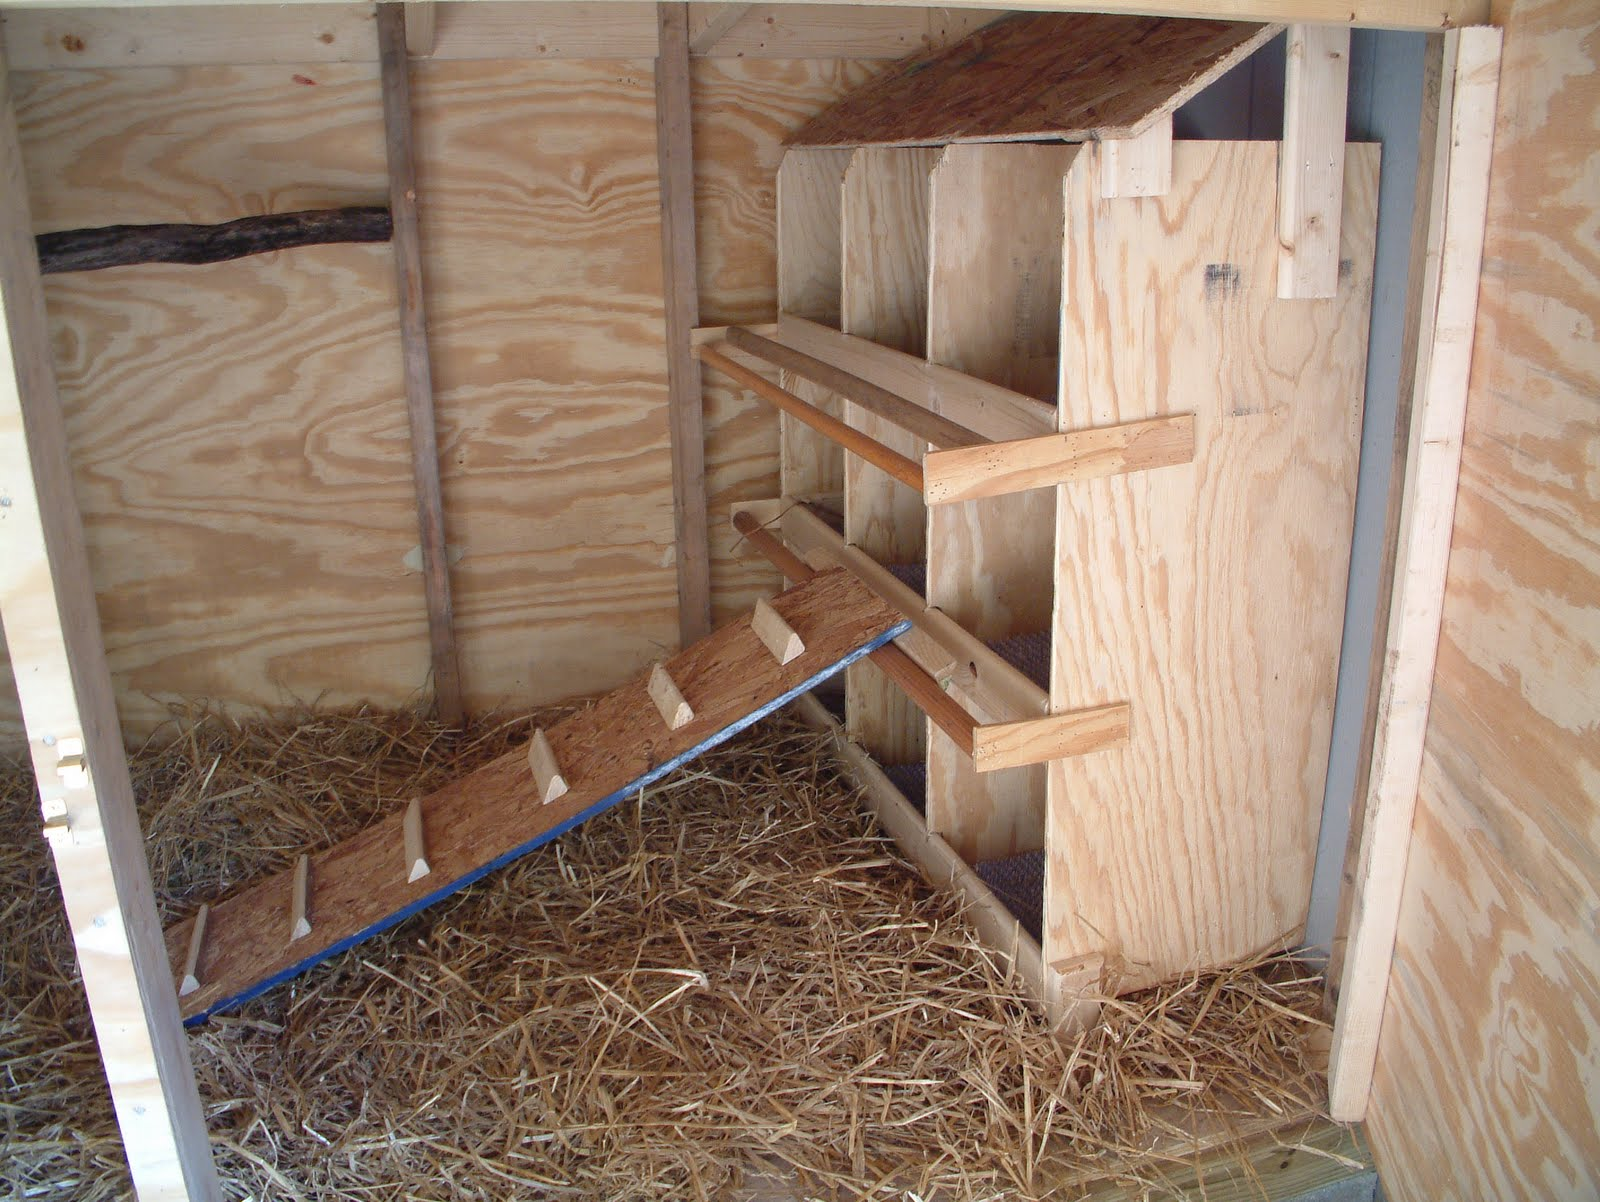 Chicken coop inside layout - photo#28